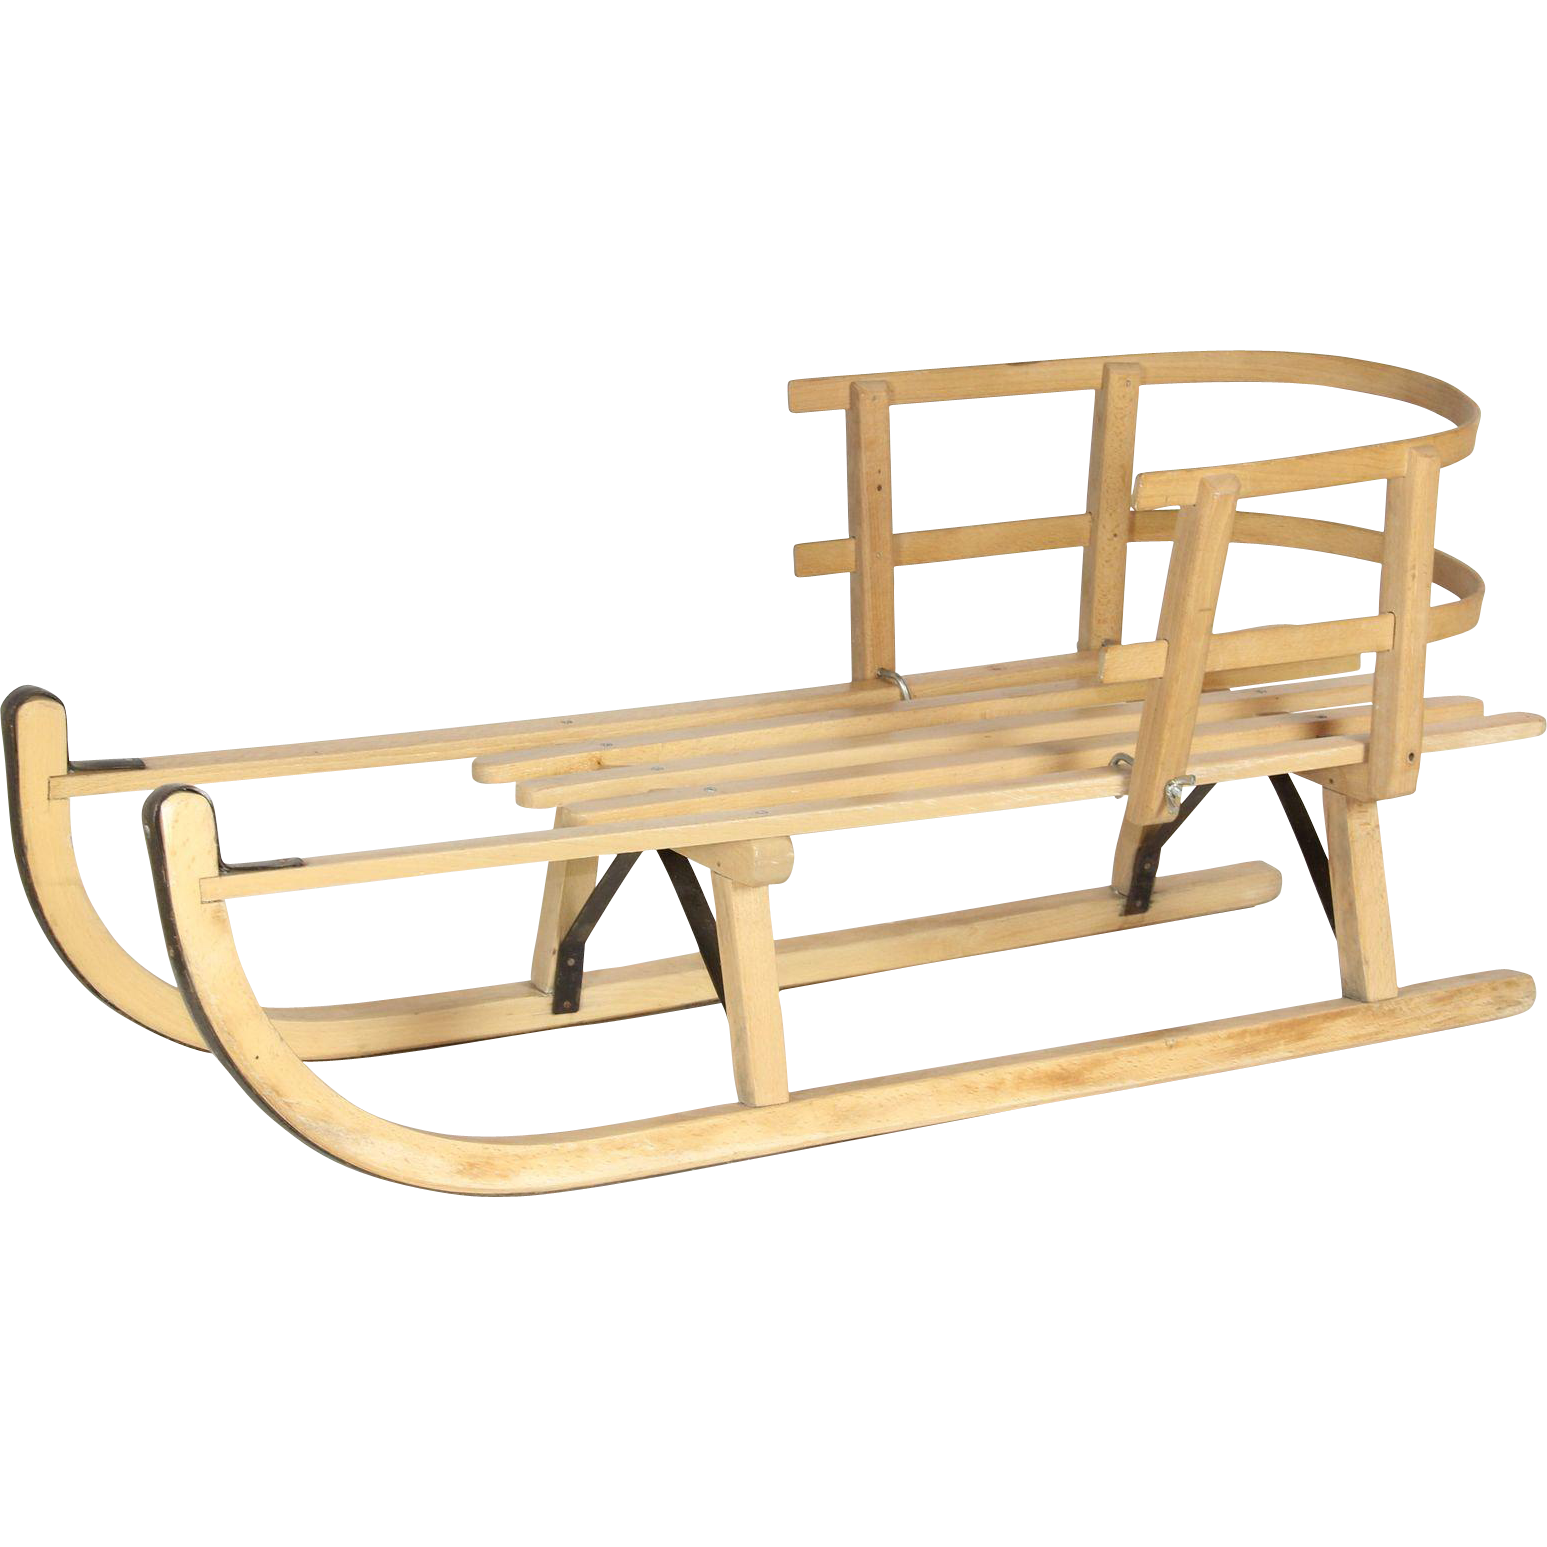 Vintage dutch wooden sled from skicountryantiques on ruby lane for Vintage sleds